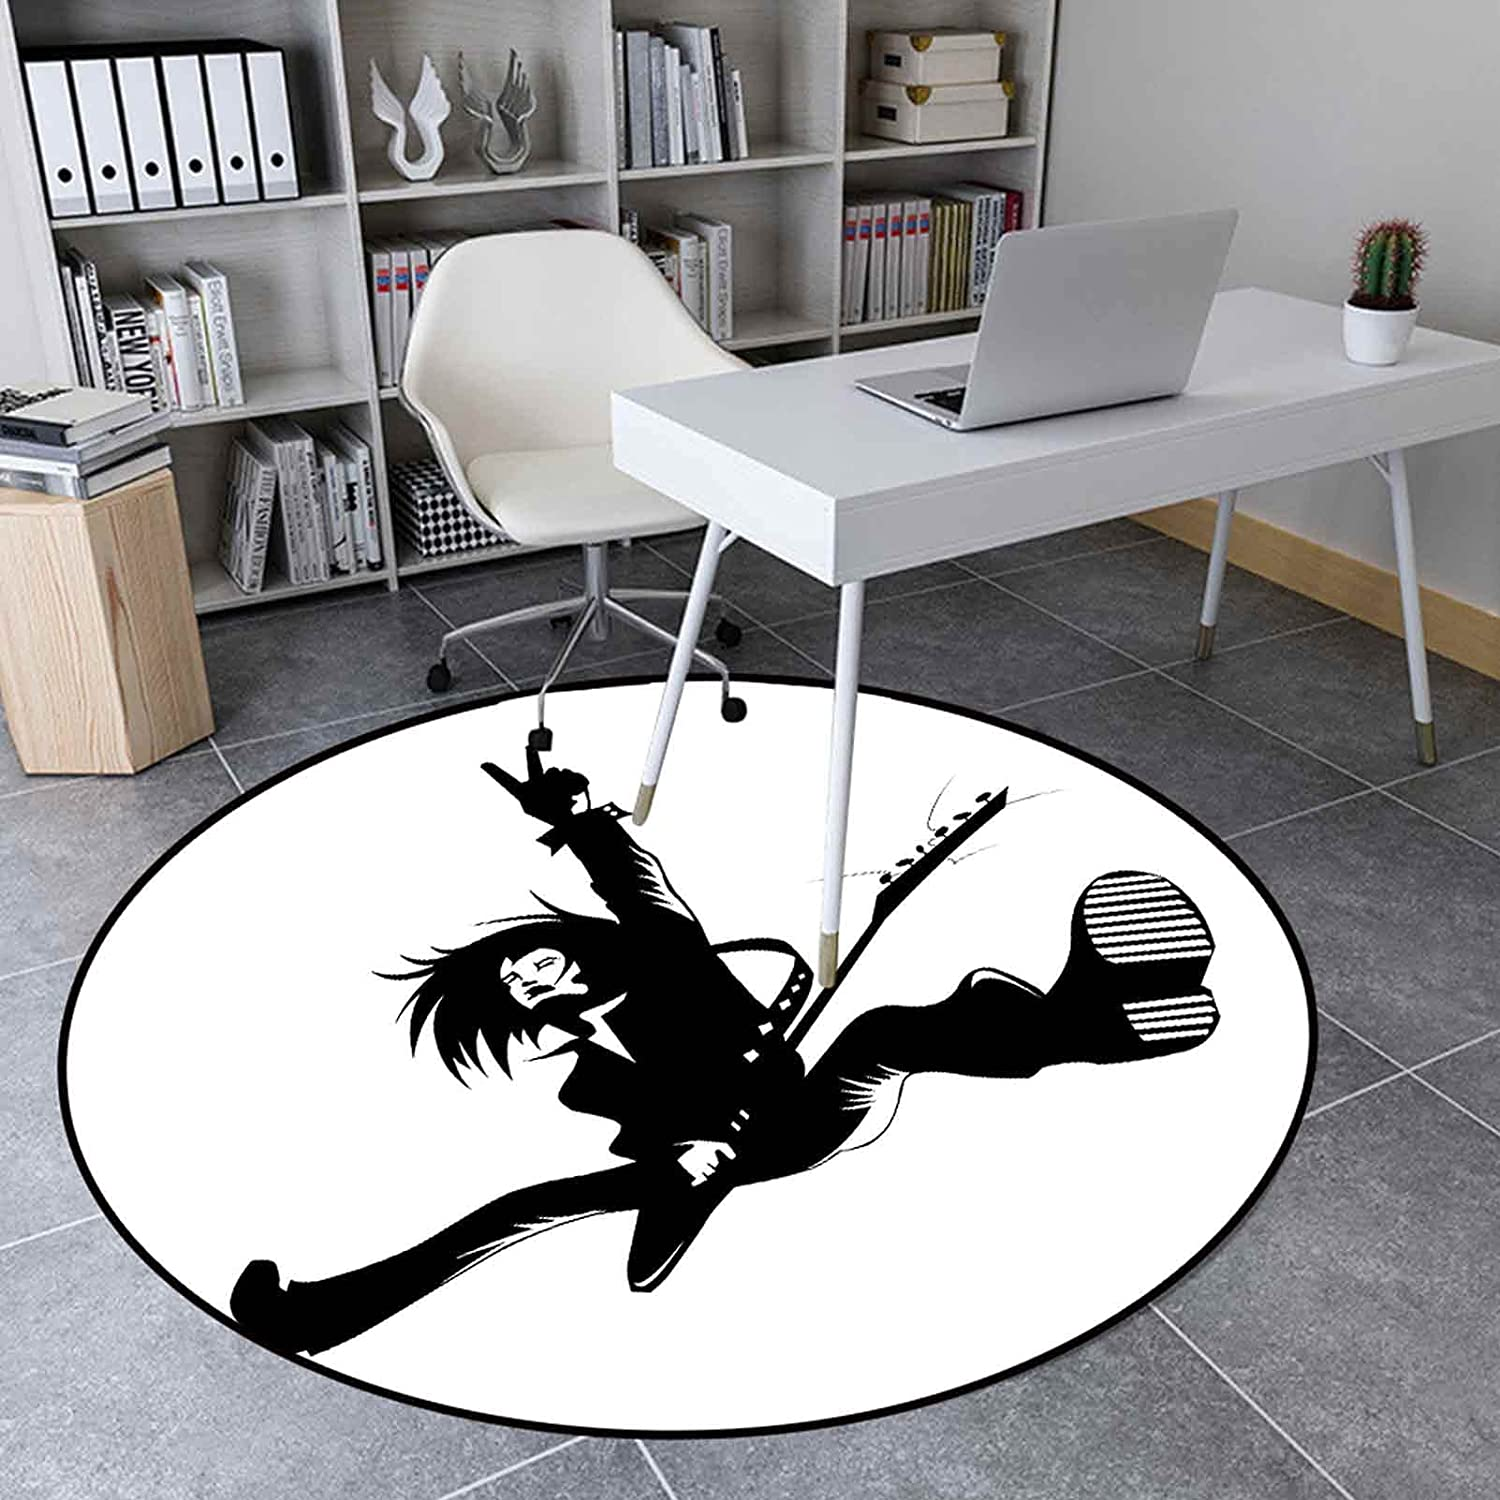 Round Area Rugs Weekly update 4.3 free shipping Ft Floor Carpet Lead for Guit Kitchen